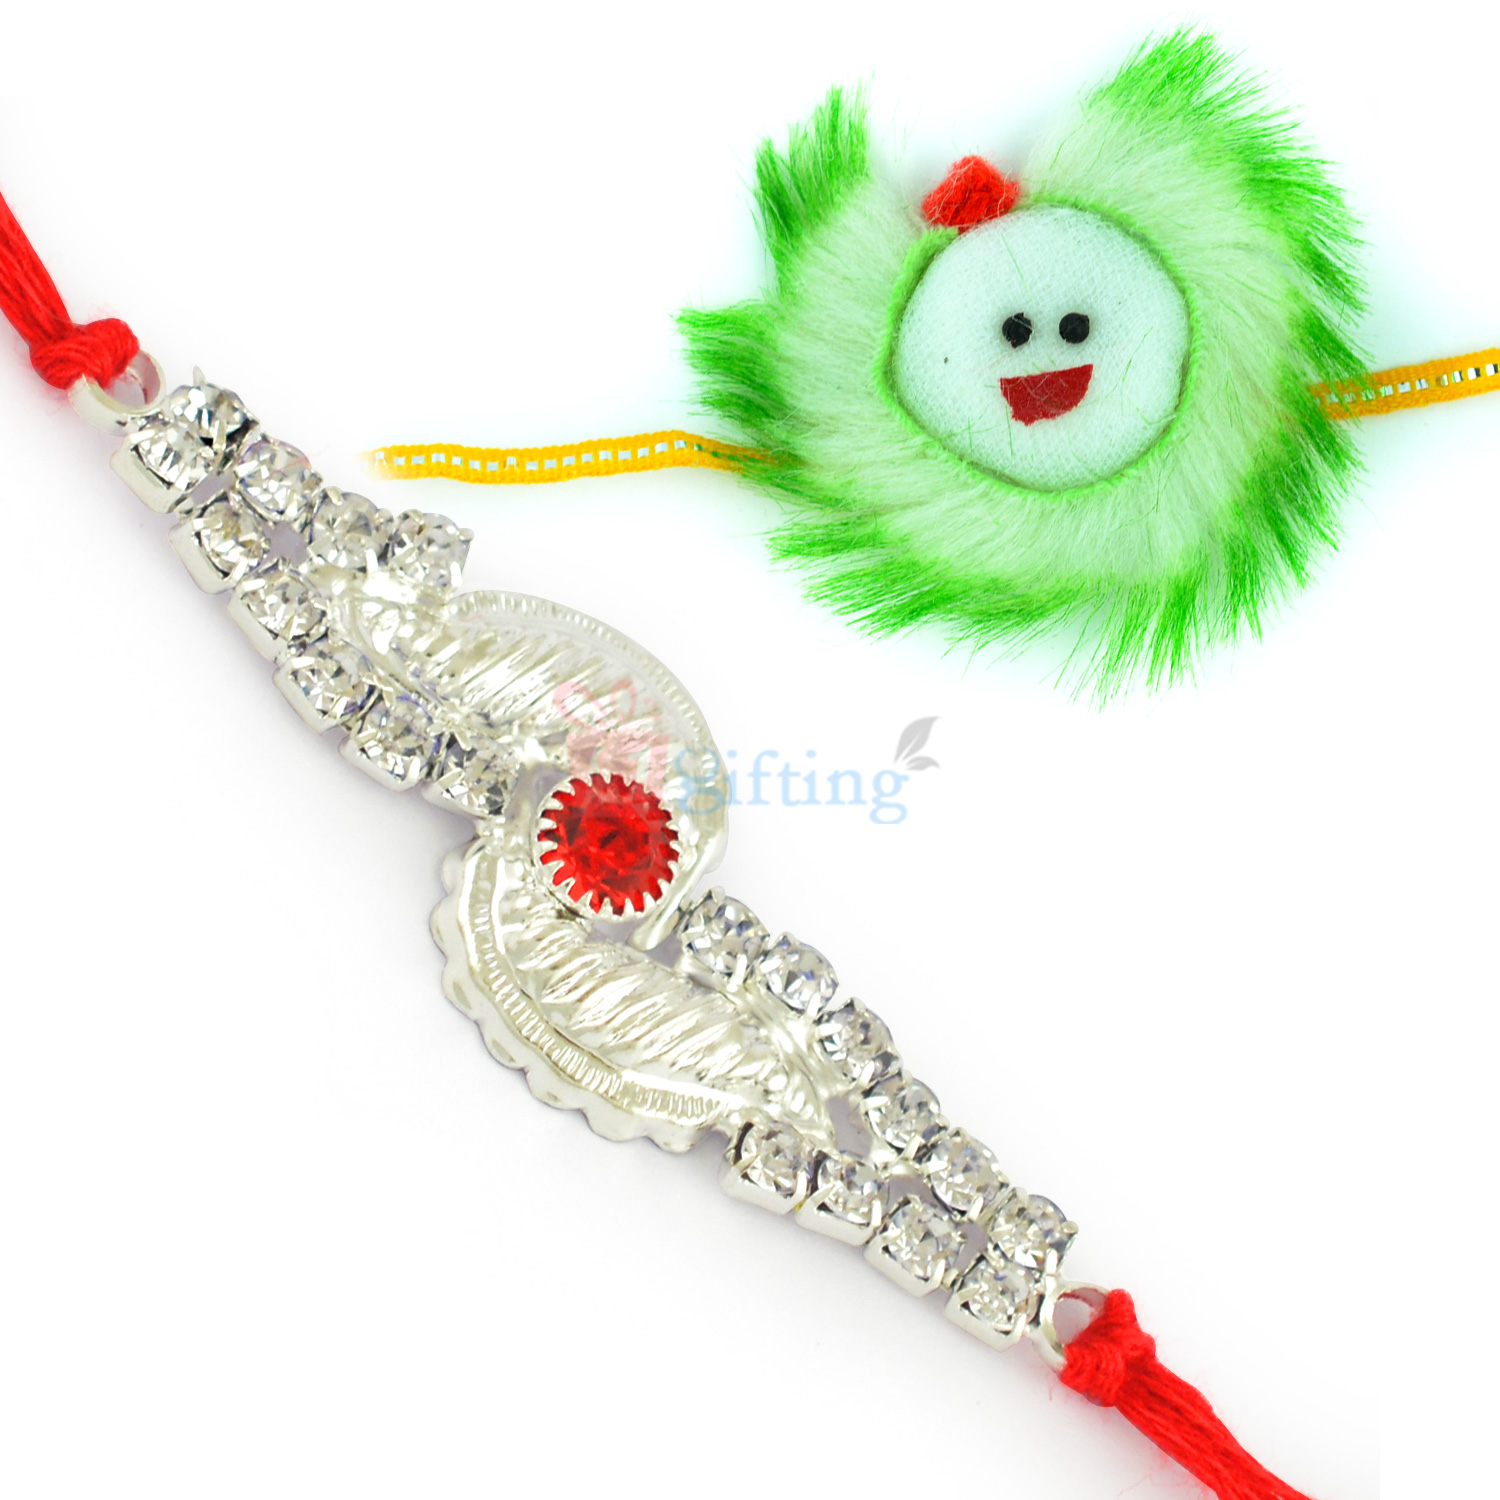 Astounding Silver Diamond Moli and Soft Fiber Kids Rakhi Hamper Set